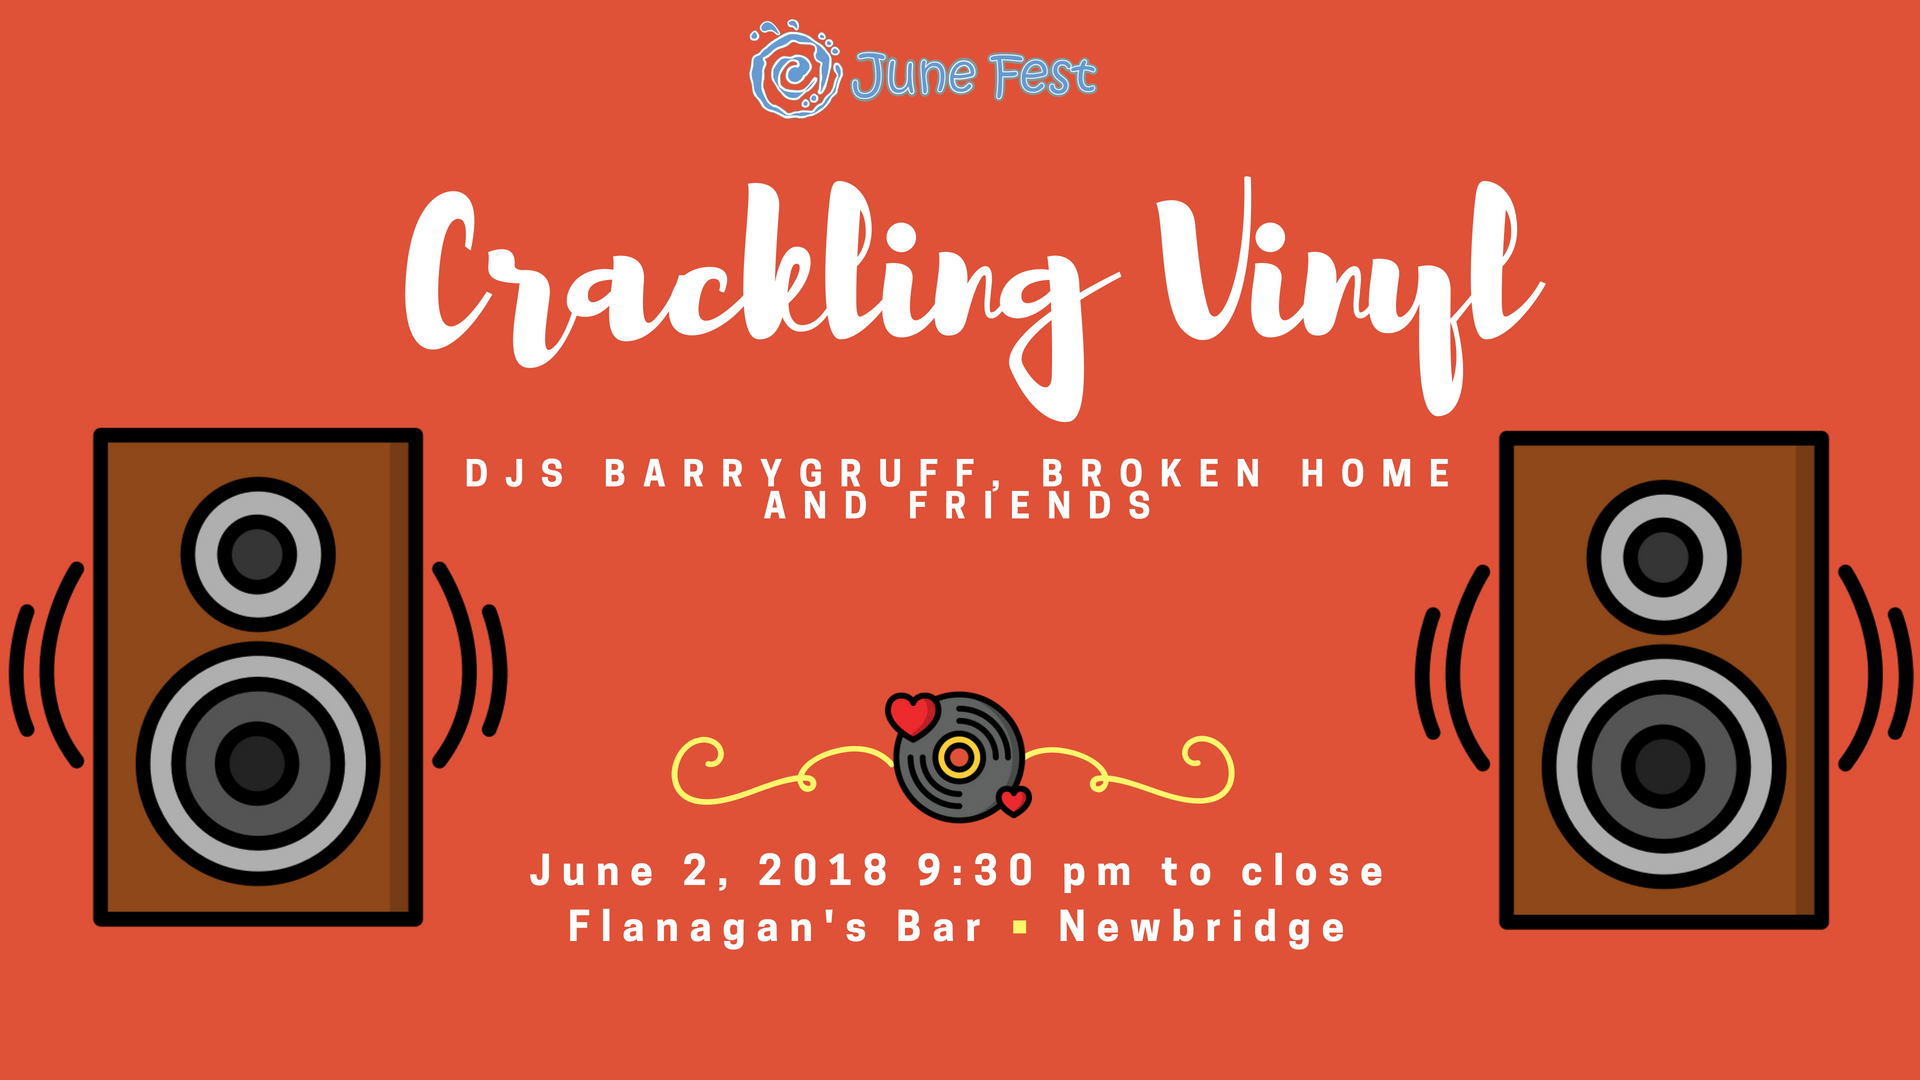 Crackling Vinyl: June 2nd @ Flanagan's